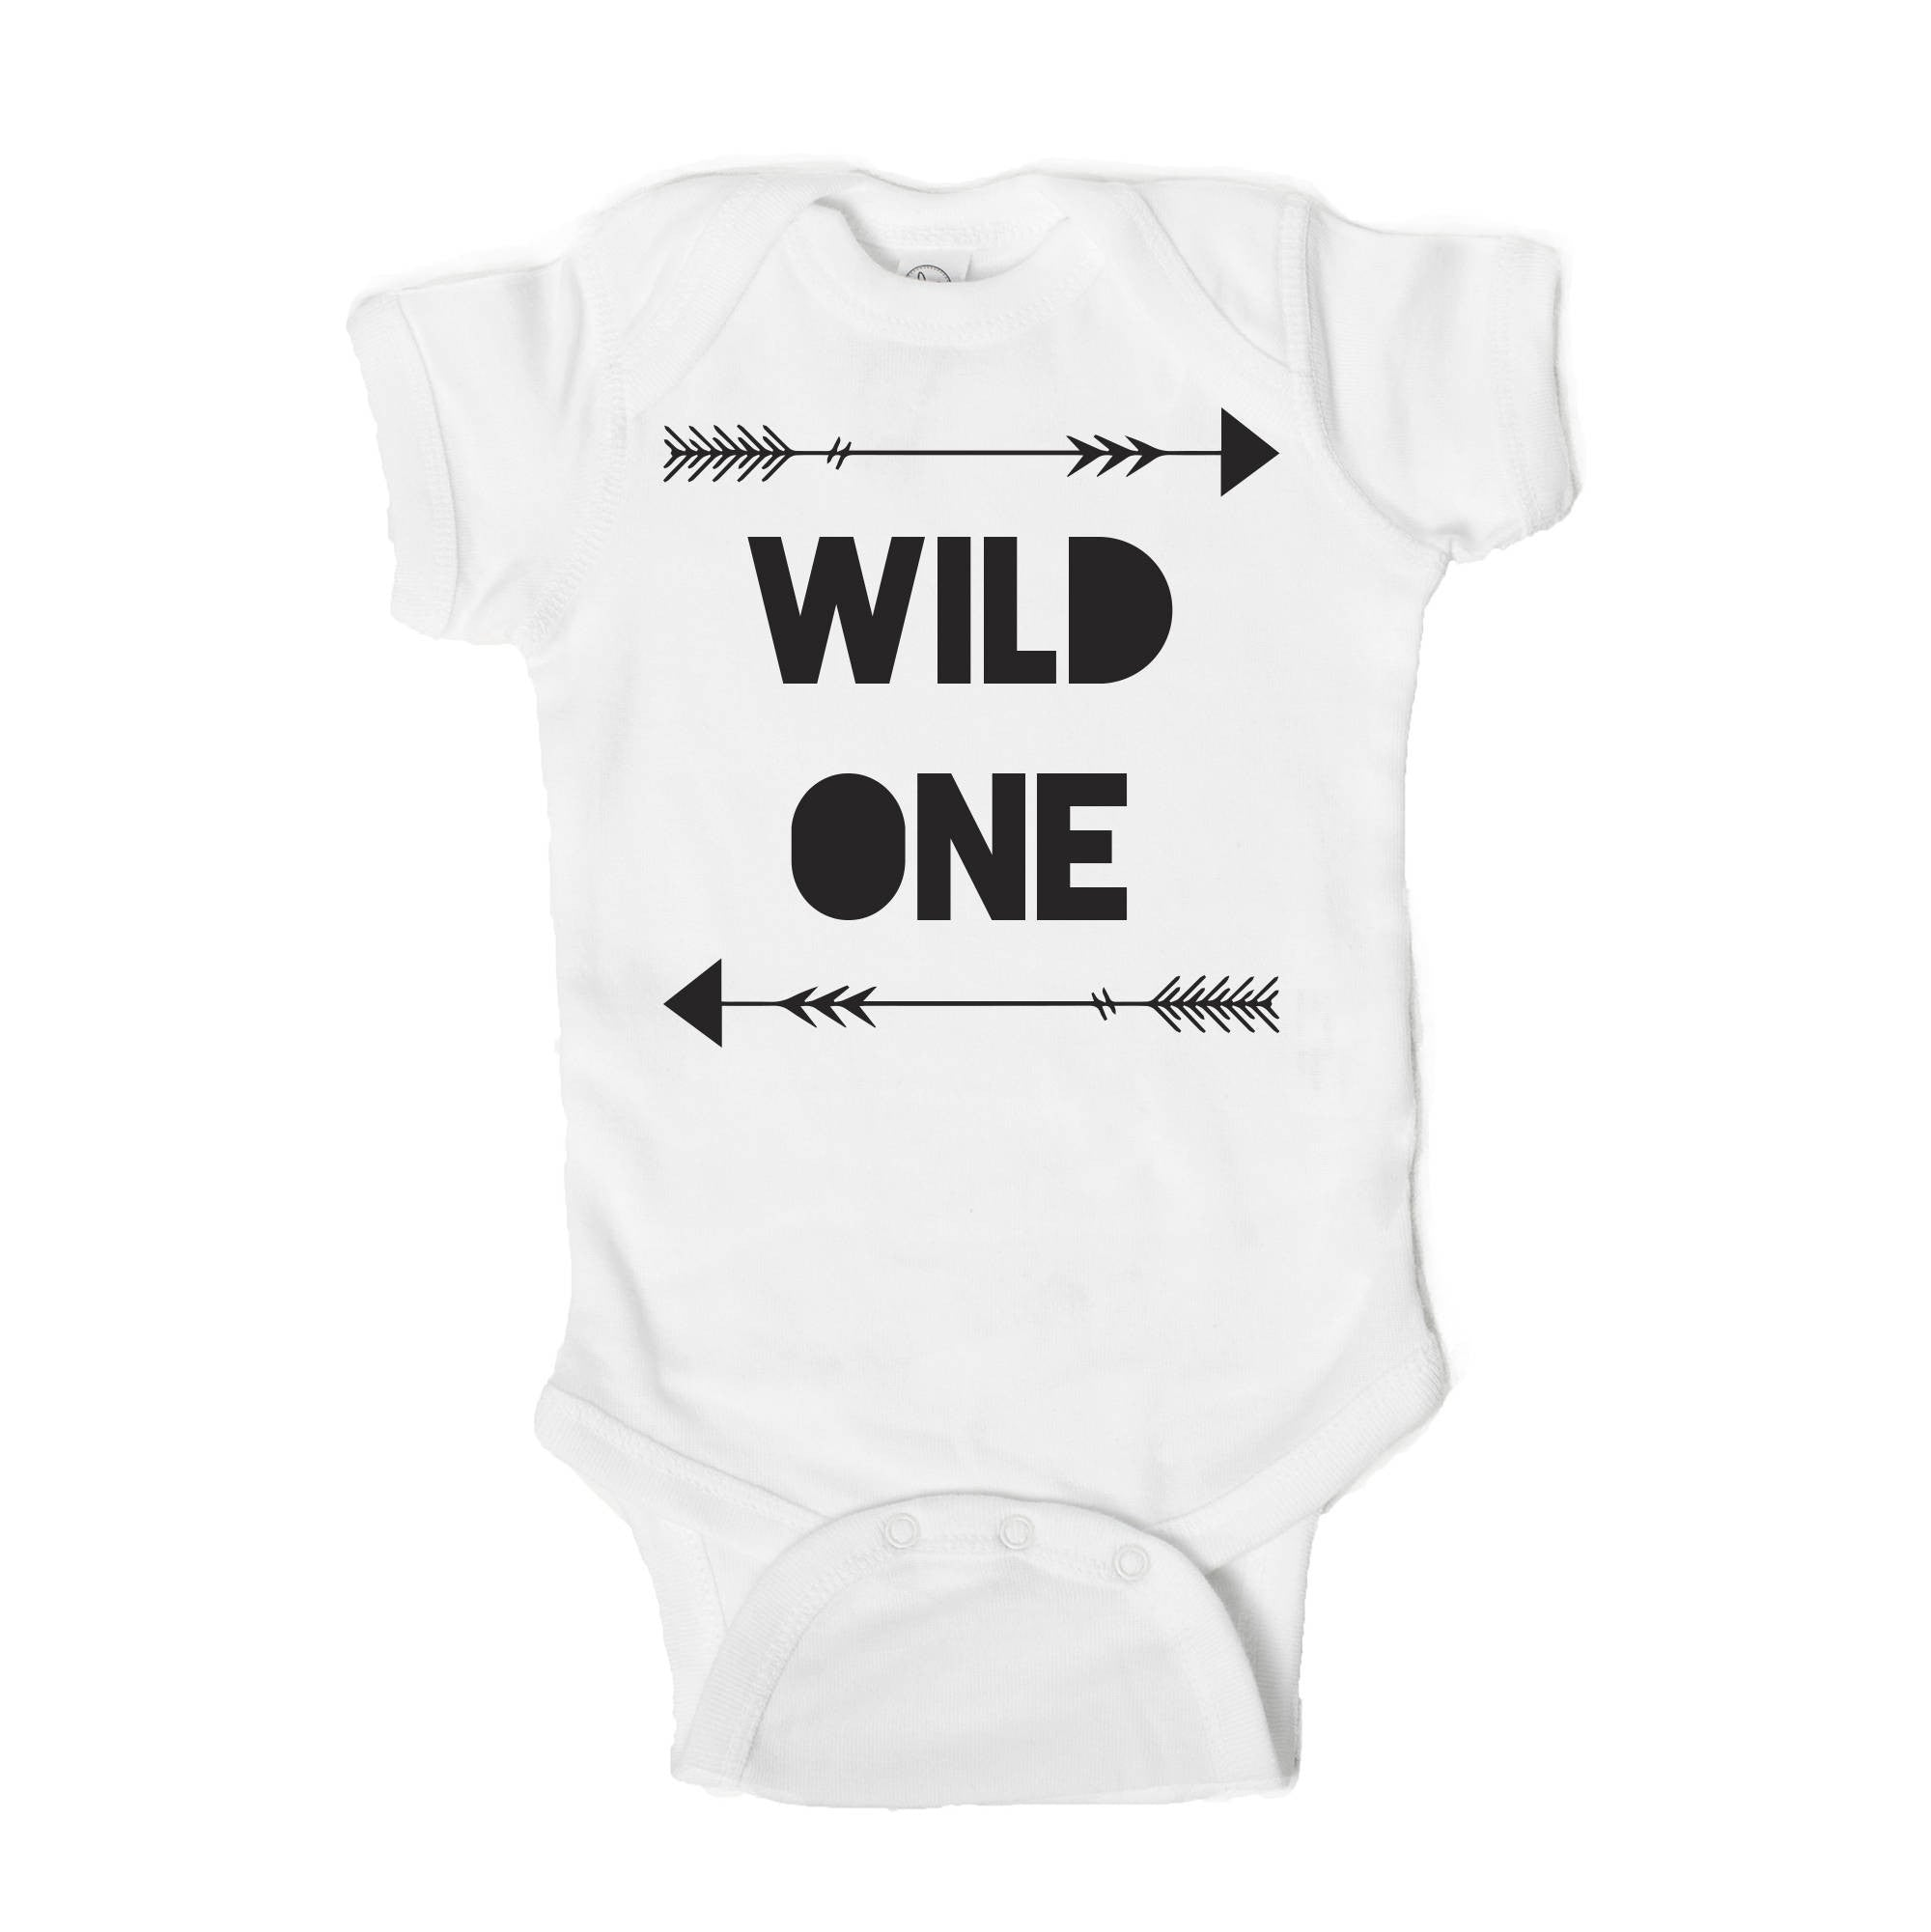 Wild One Baby First Birthday Onesie